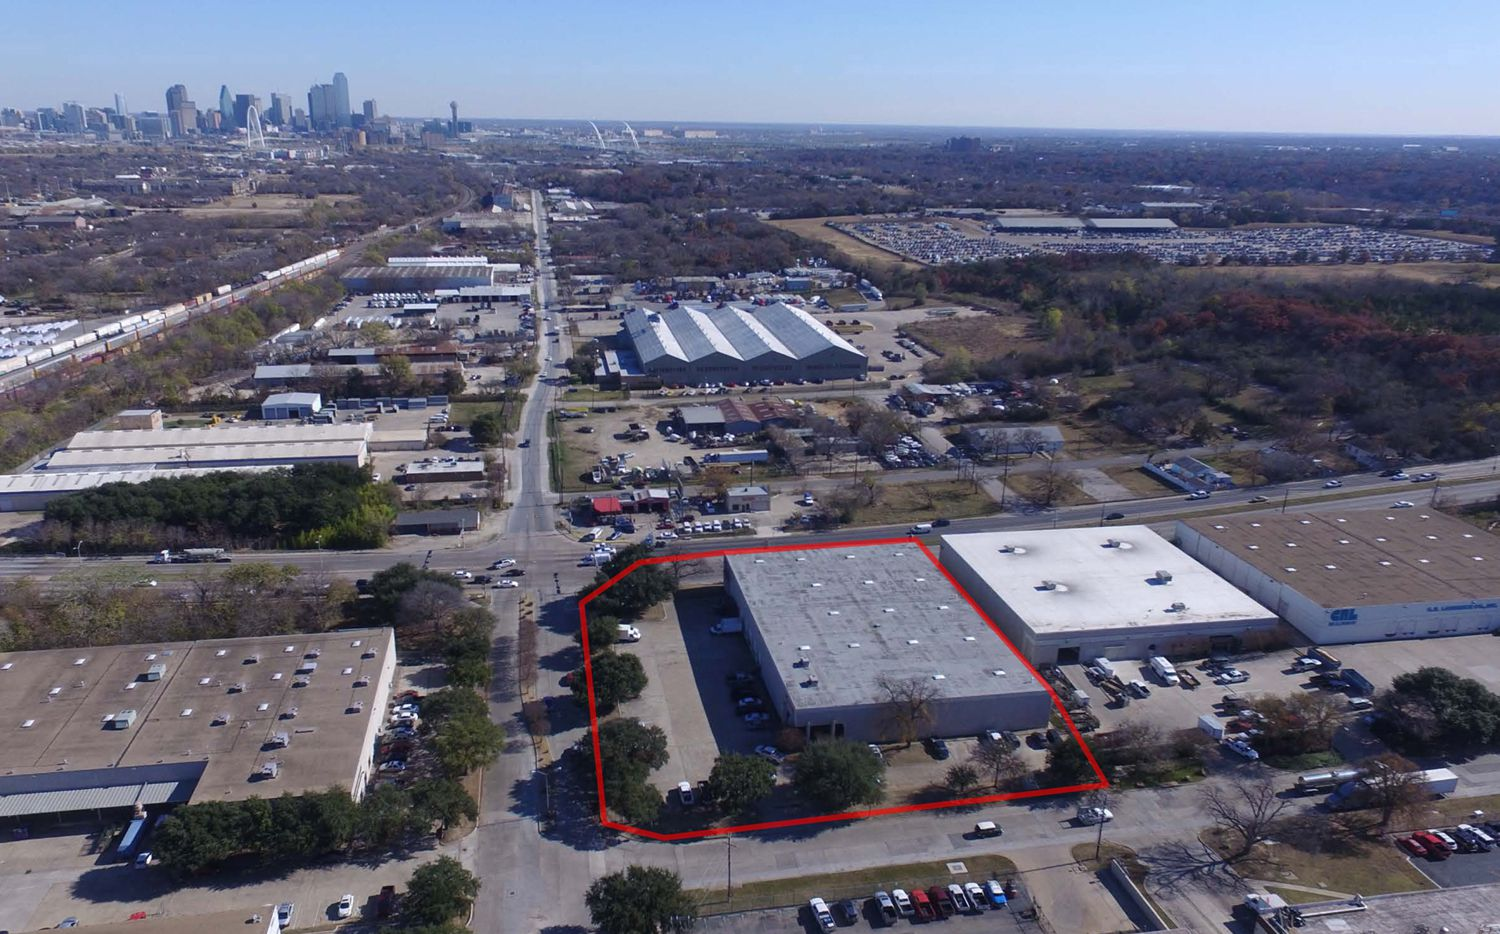 Stonelake Capital Partners has purchased a 38,500 square-foot industrial building at 1900 Lone star Dr. in West Dallas.